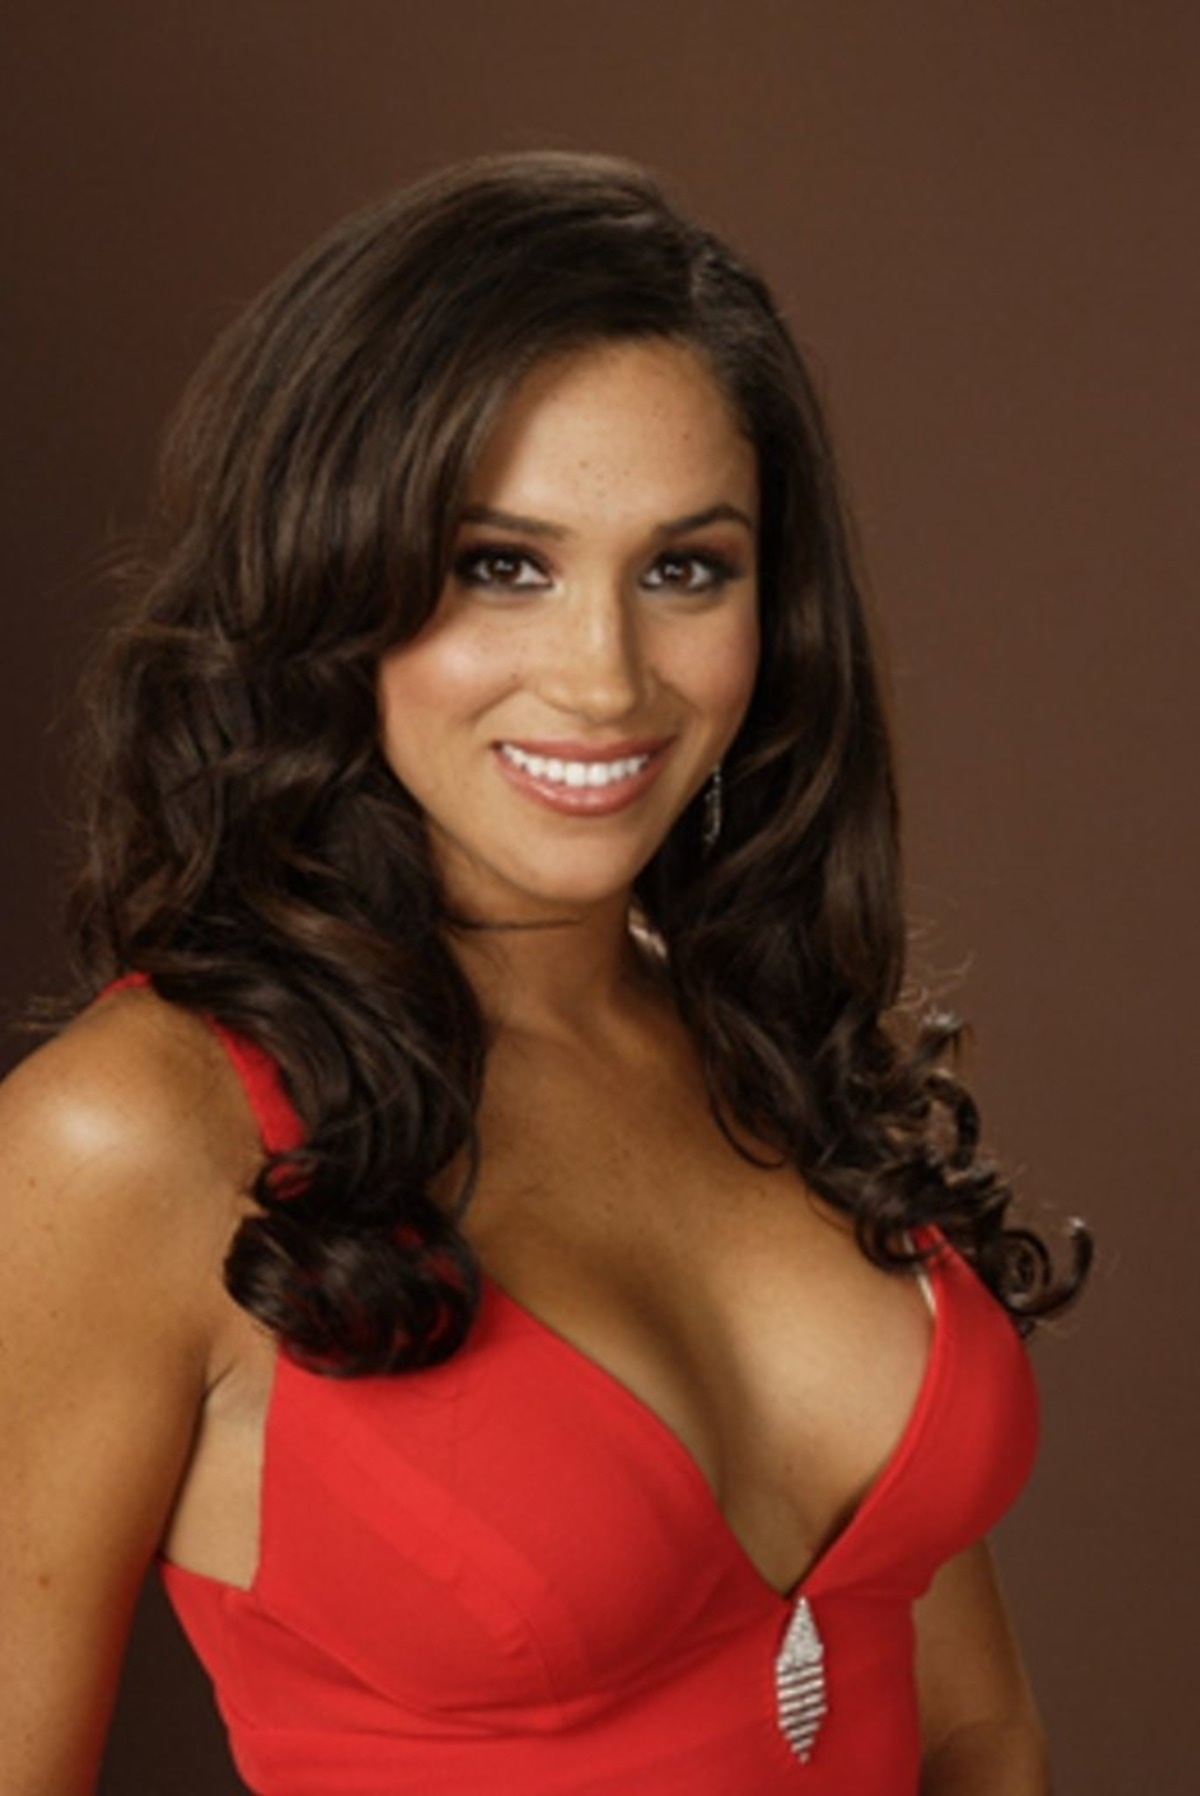 rachel-zane-meghan-markle-suits-hot-14